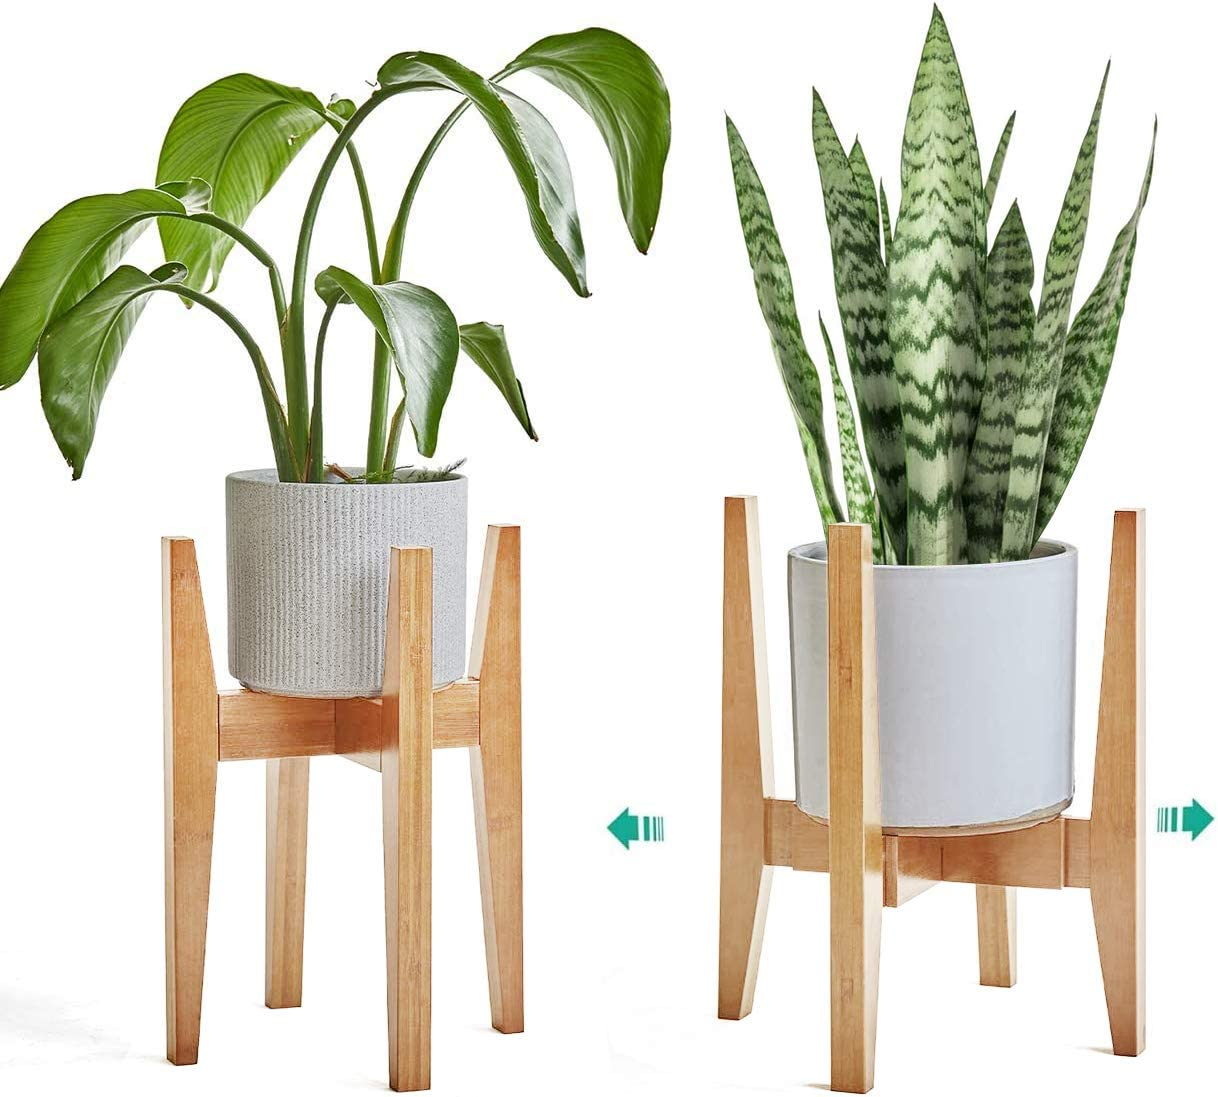 IYEBRAO 2 Pack Mid Century Adjust Al Popular products sold out. Wood Indoor Stand-Bamboo Plant